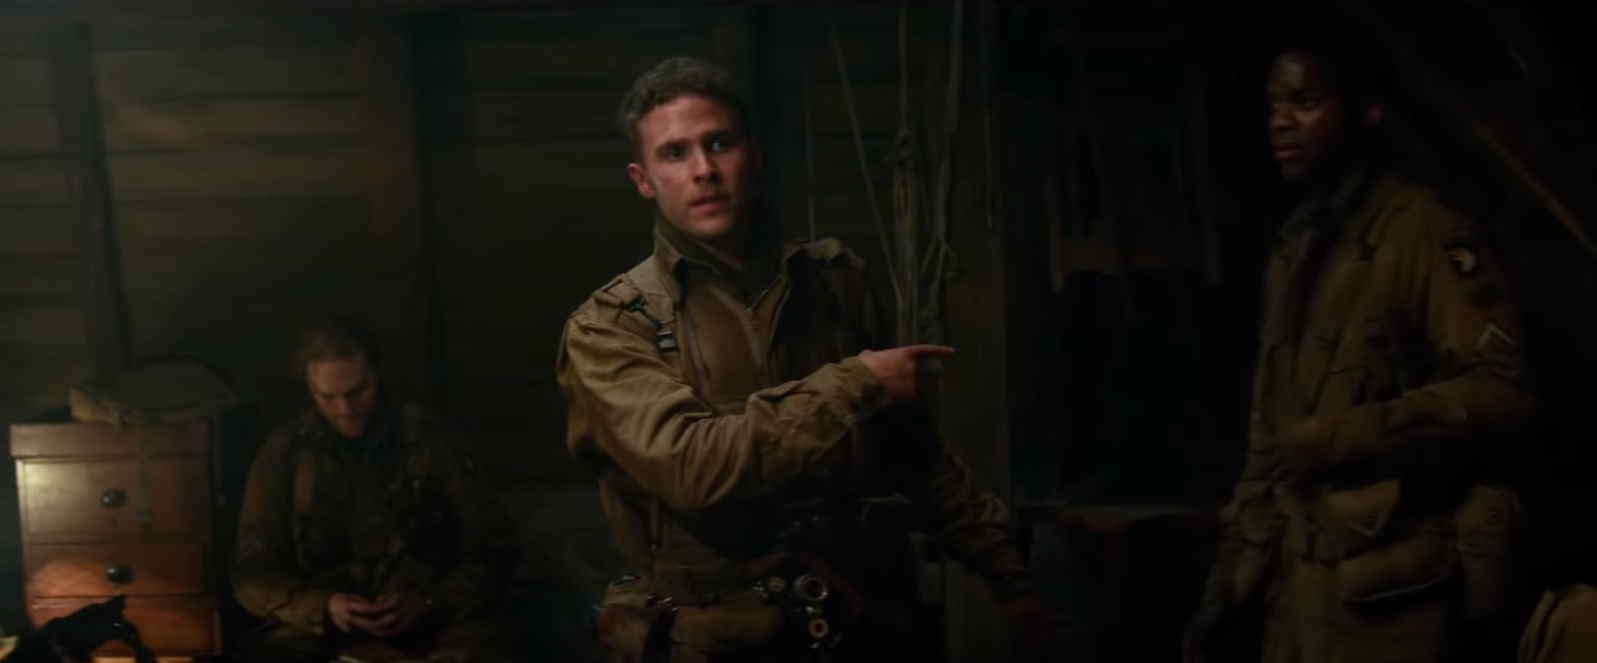 OVERLORD trailer is Castle Wolfenstein meets THE KEEP!